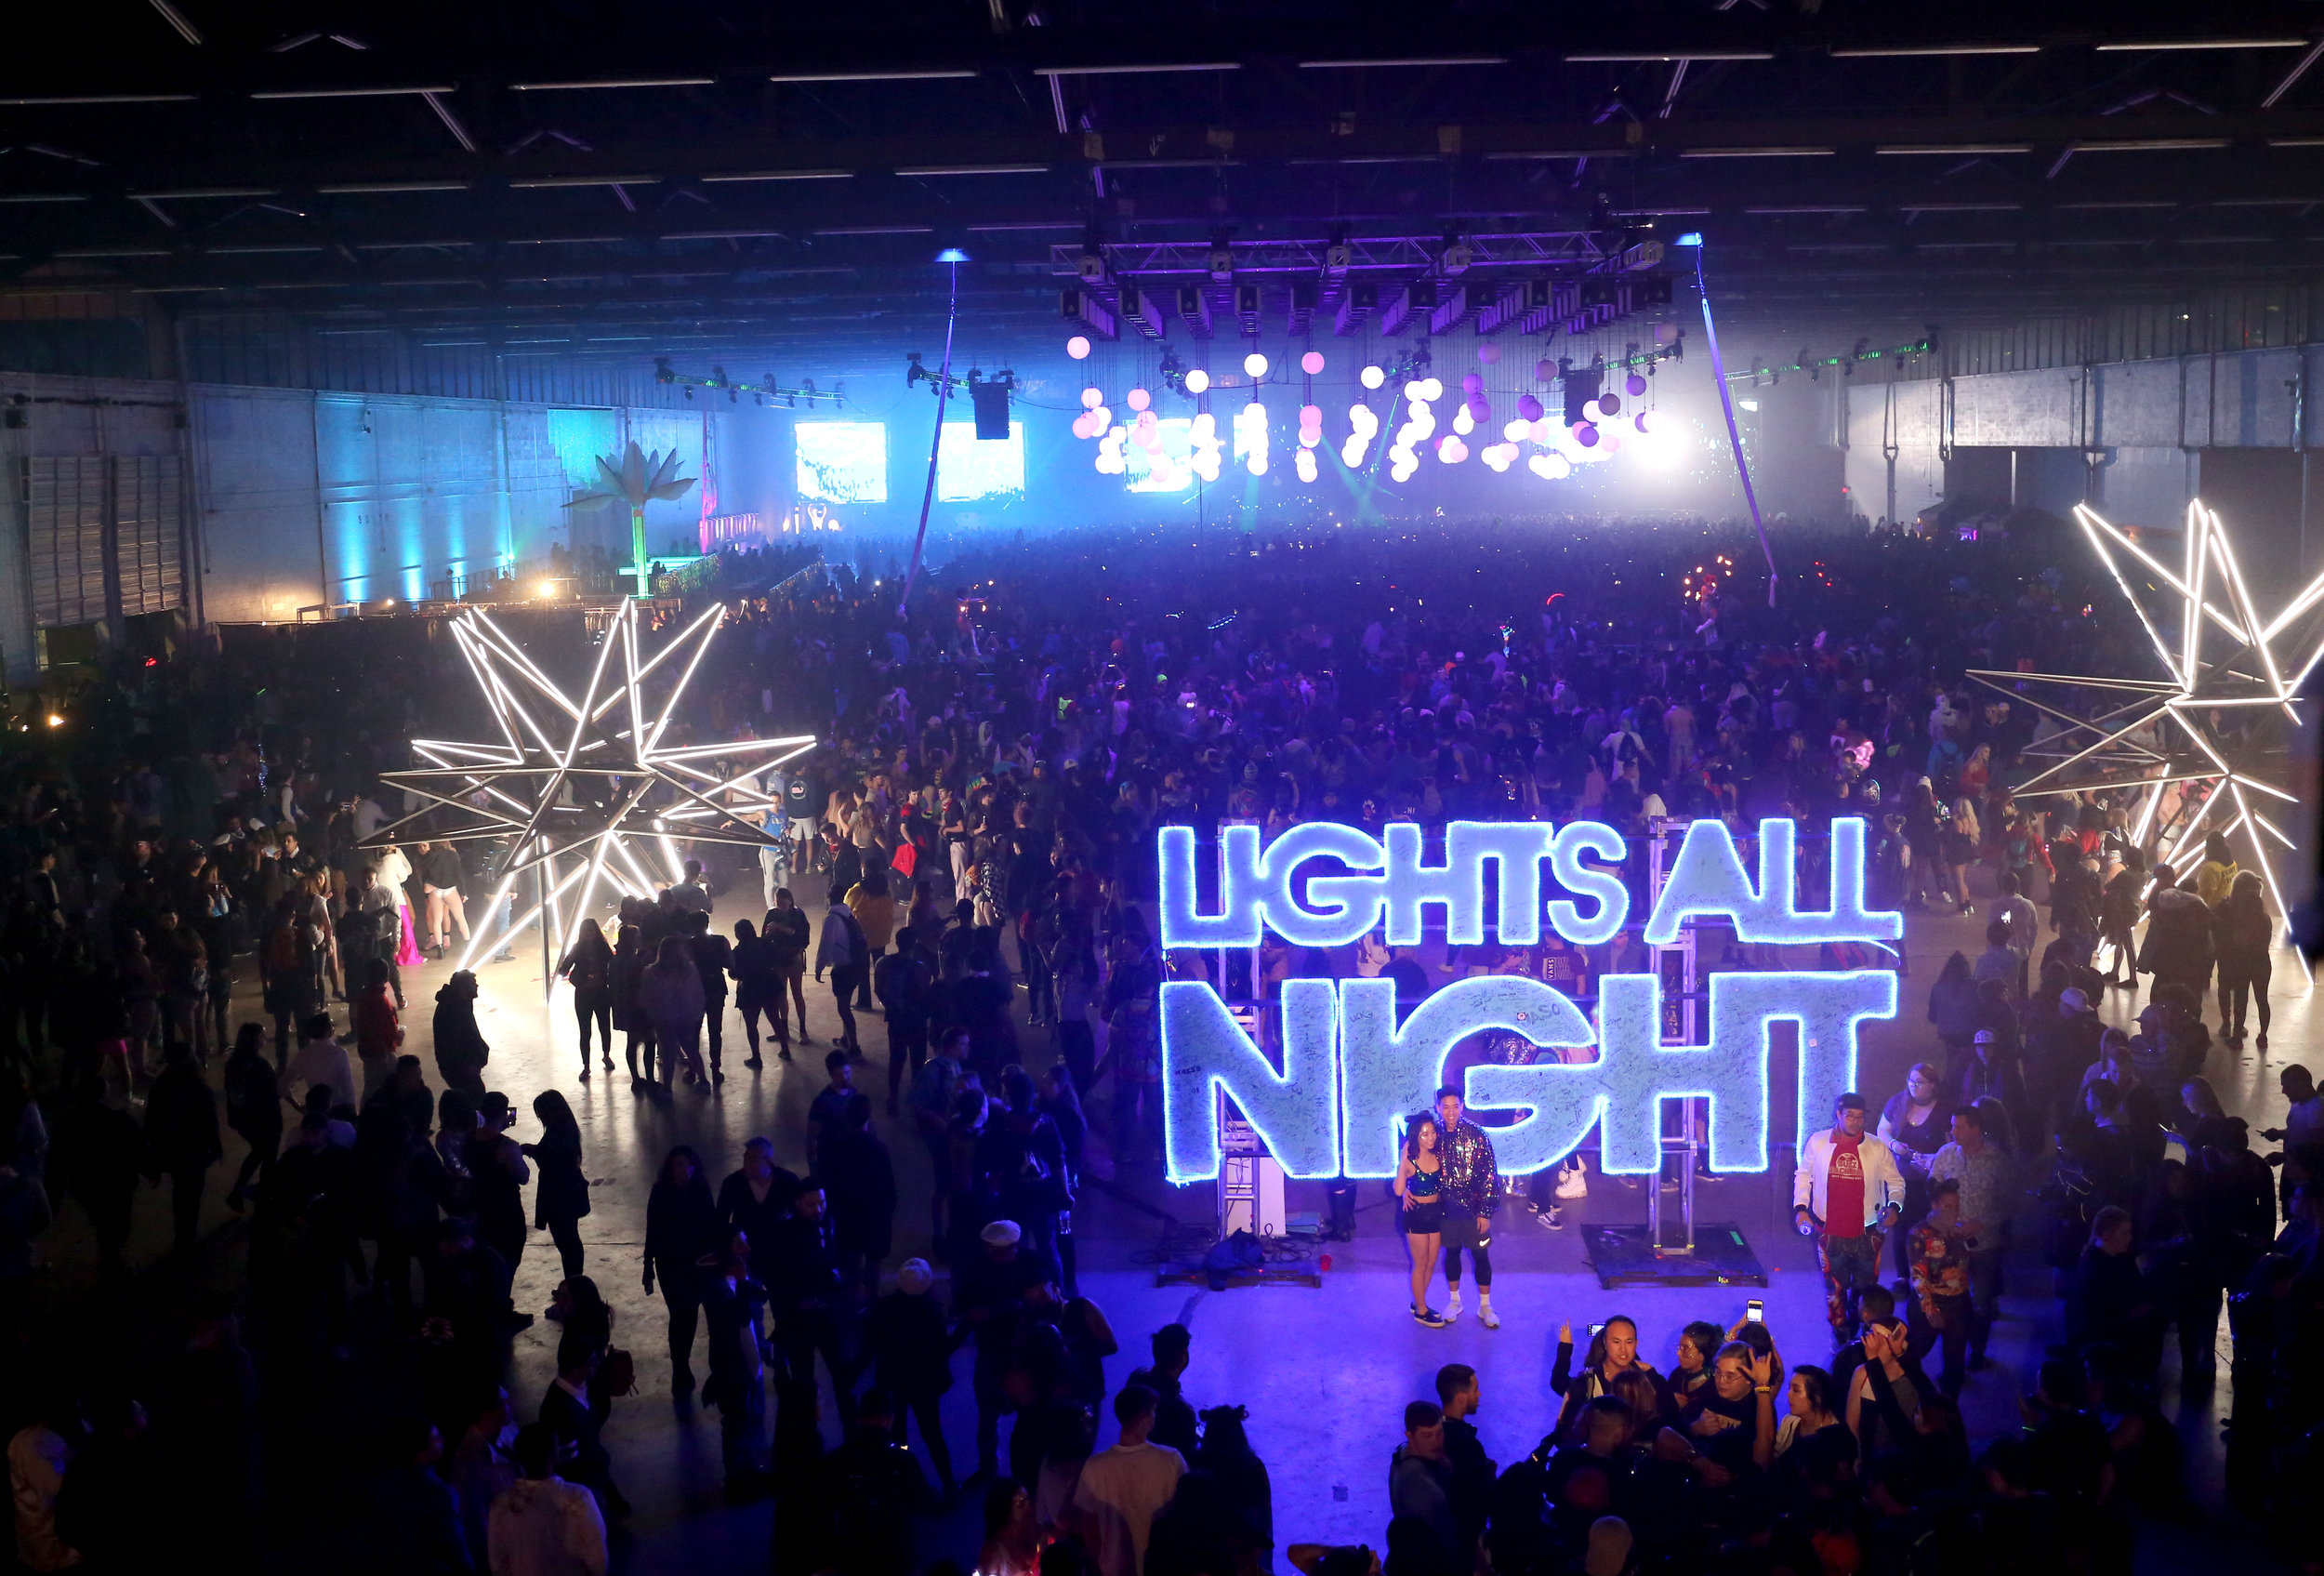 LightsAllNight_Dallas_Stephanie.Tacy14.jpg